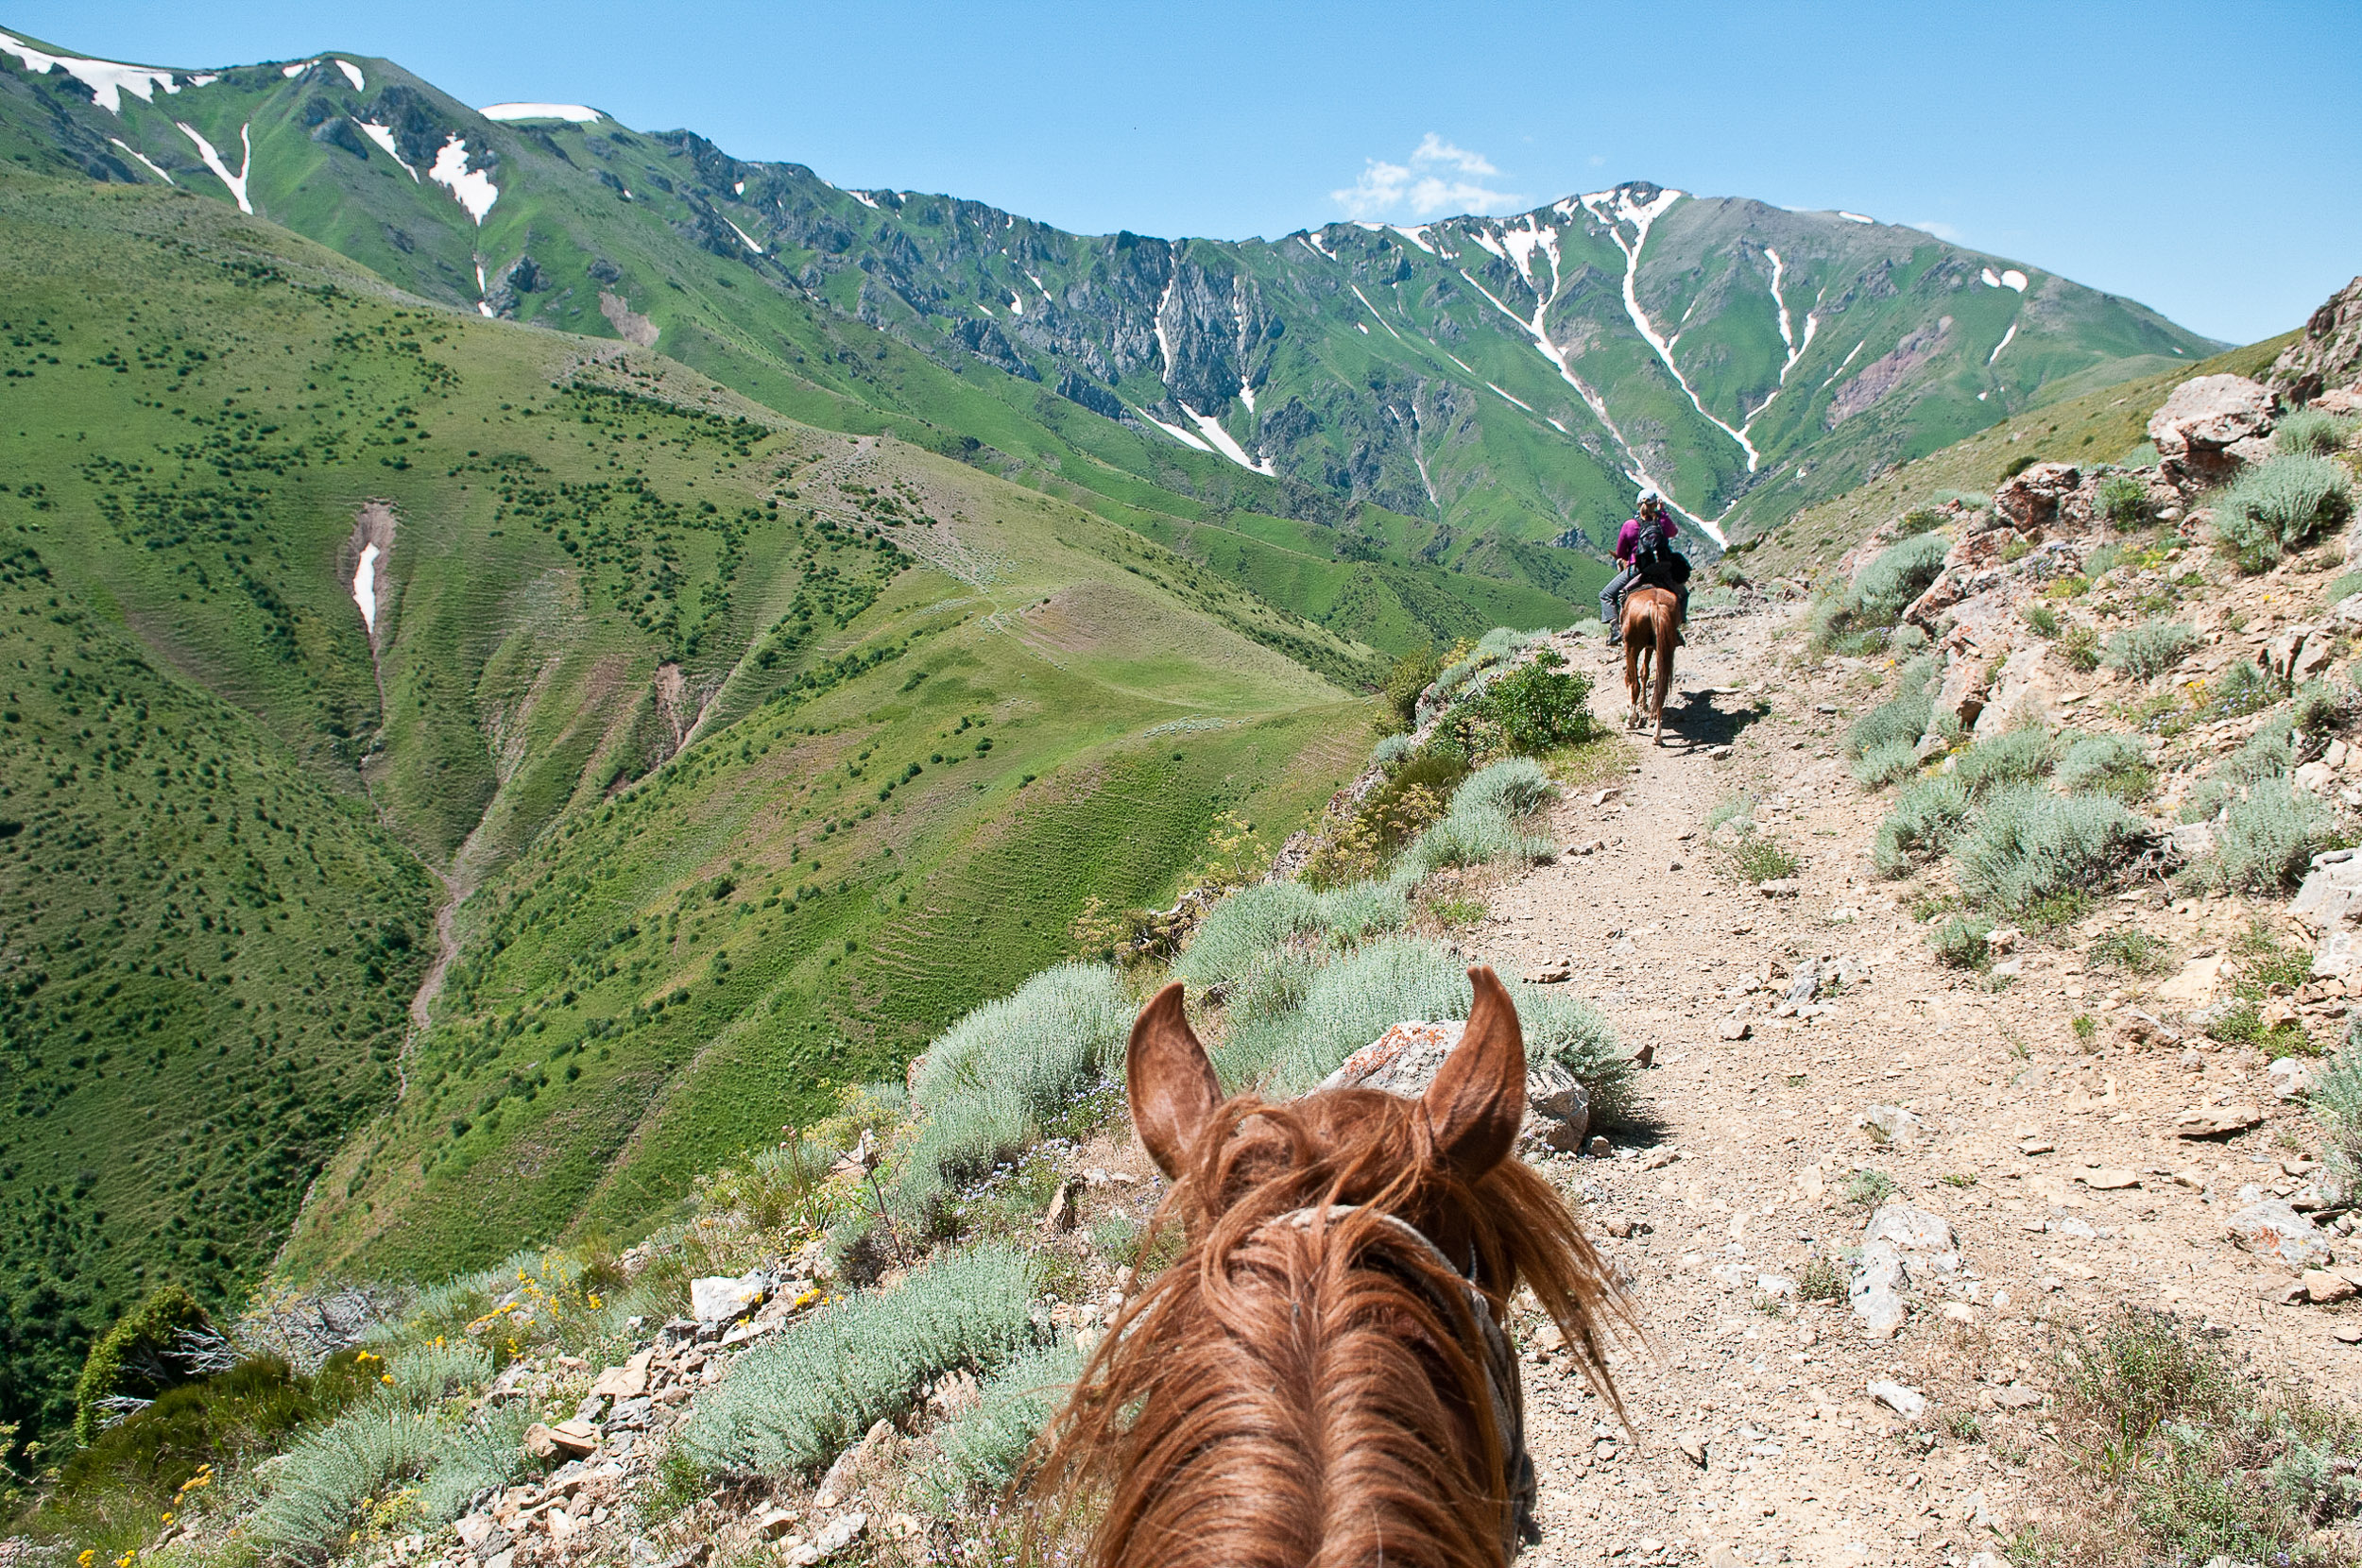 Riding horses into the mountains, Kazakhstan.